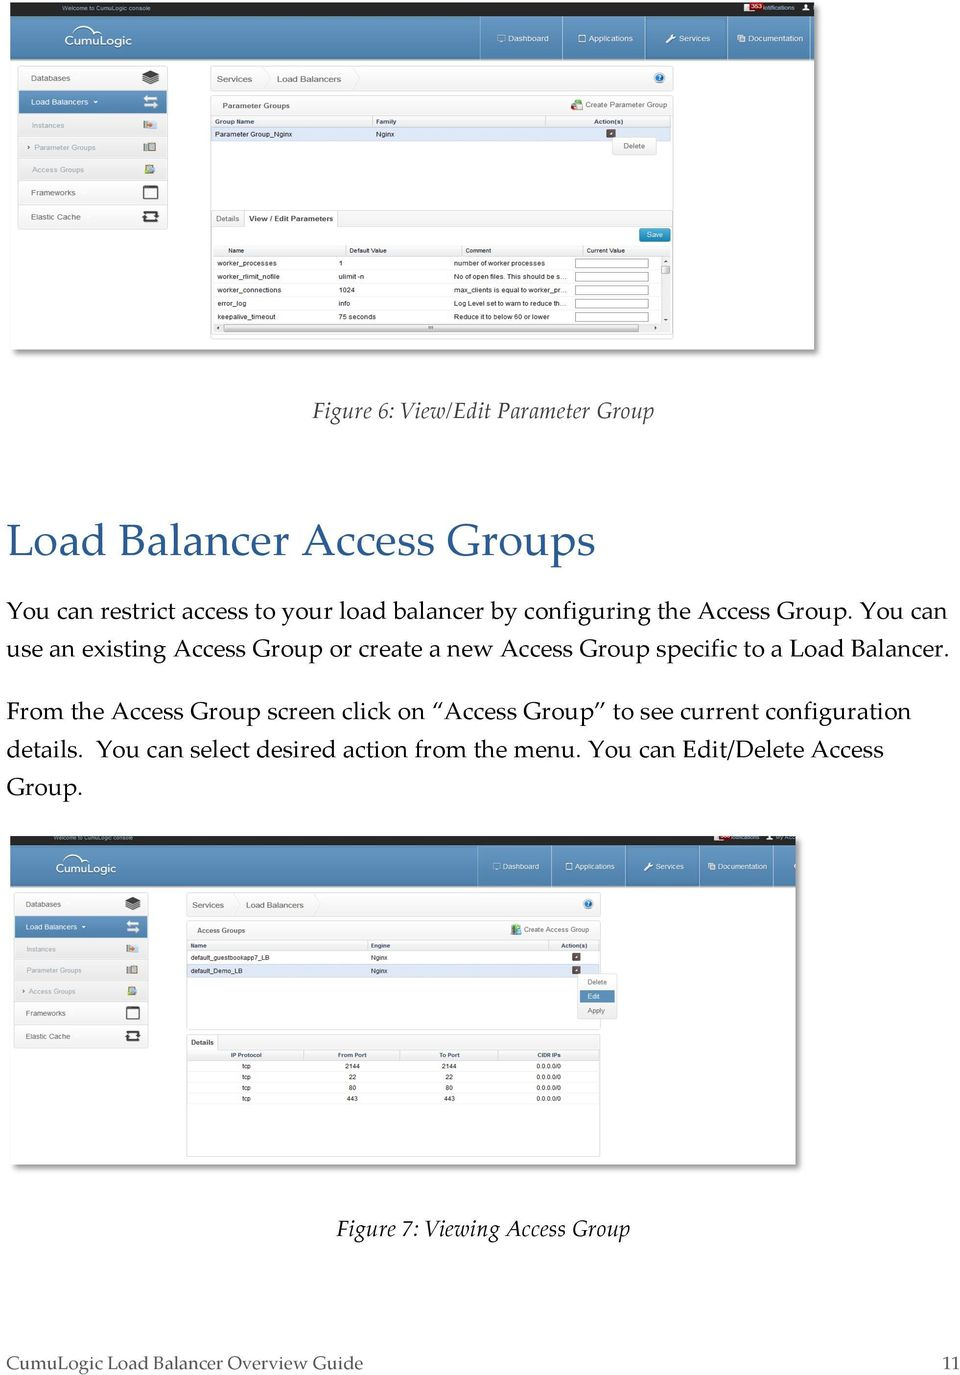 You can use an existing Access Group or create a new Access Group specific to a Load Balancer.